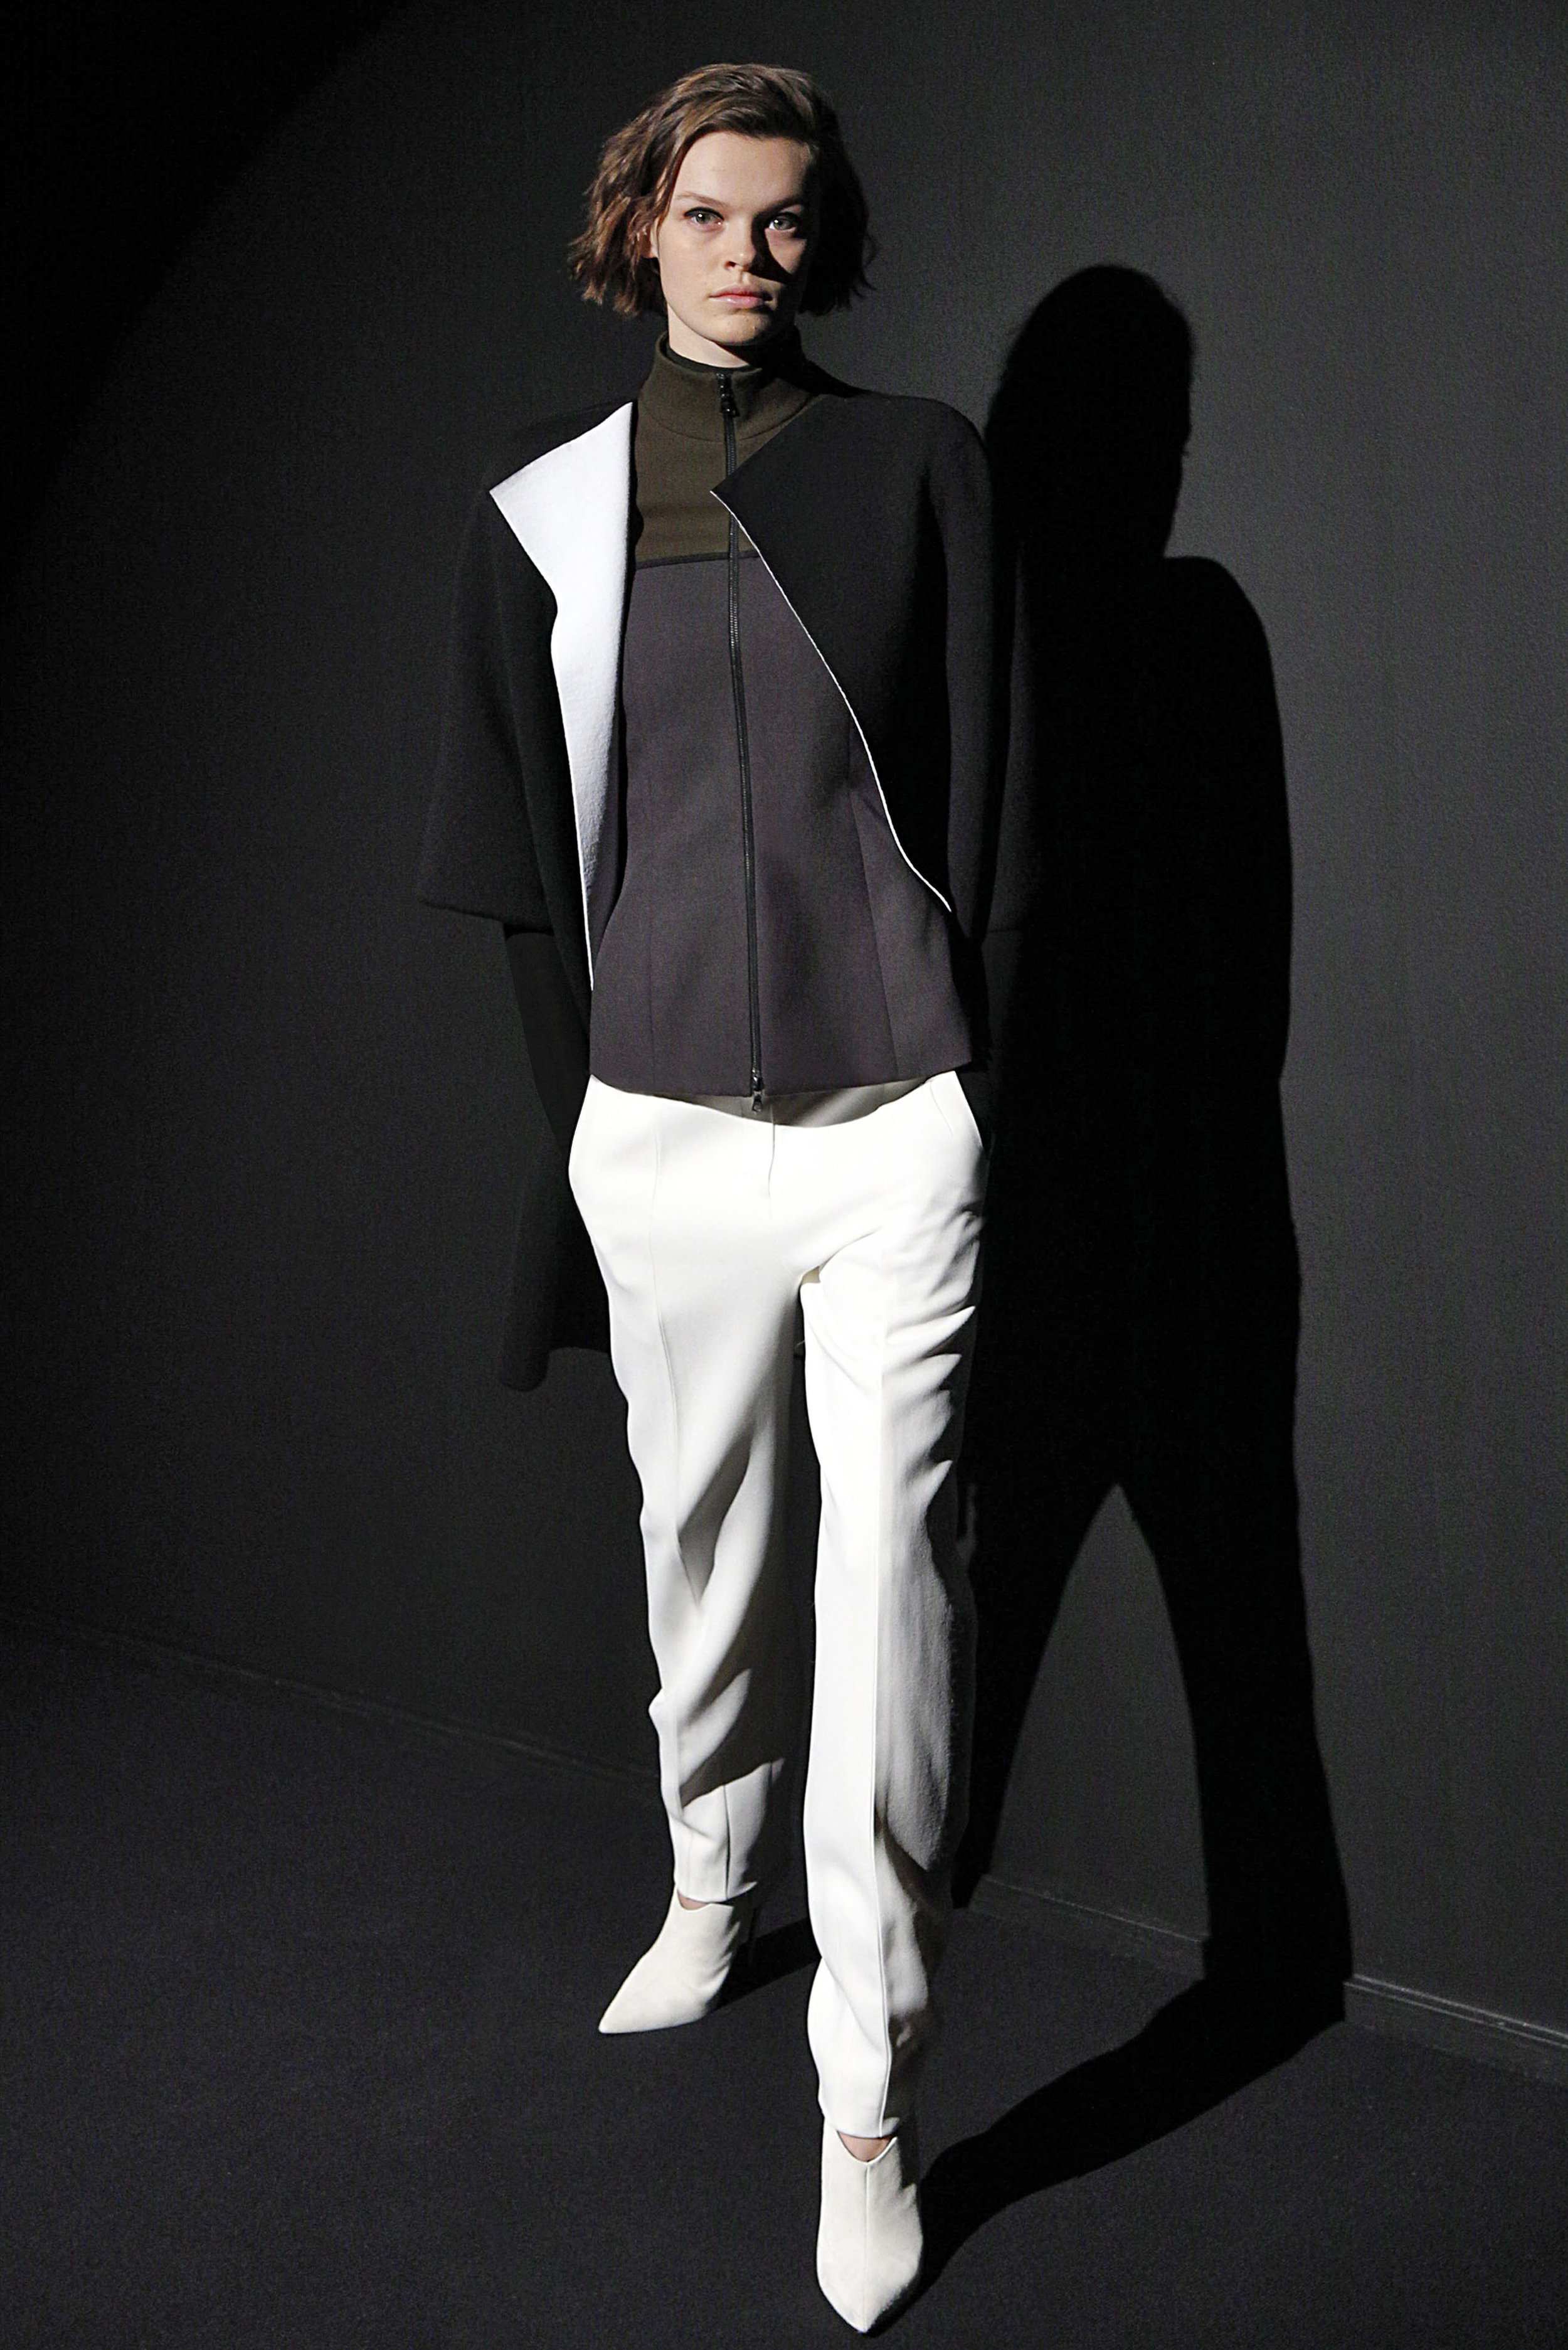 Look 13 Black/white knit coat over moss/charcoal wool jacket with white pant.